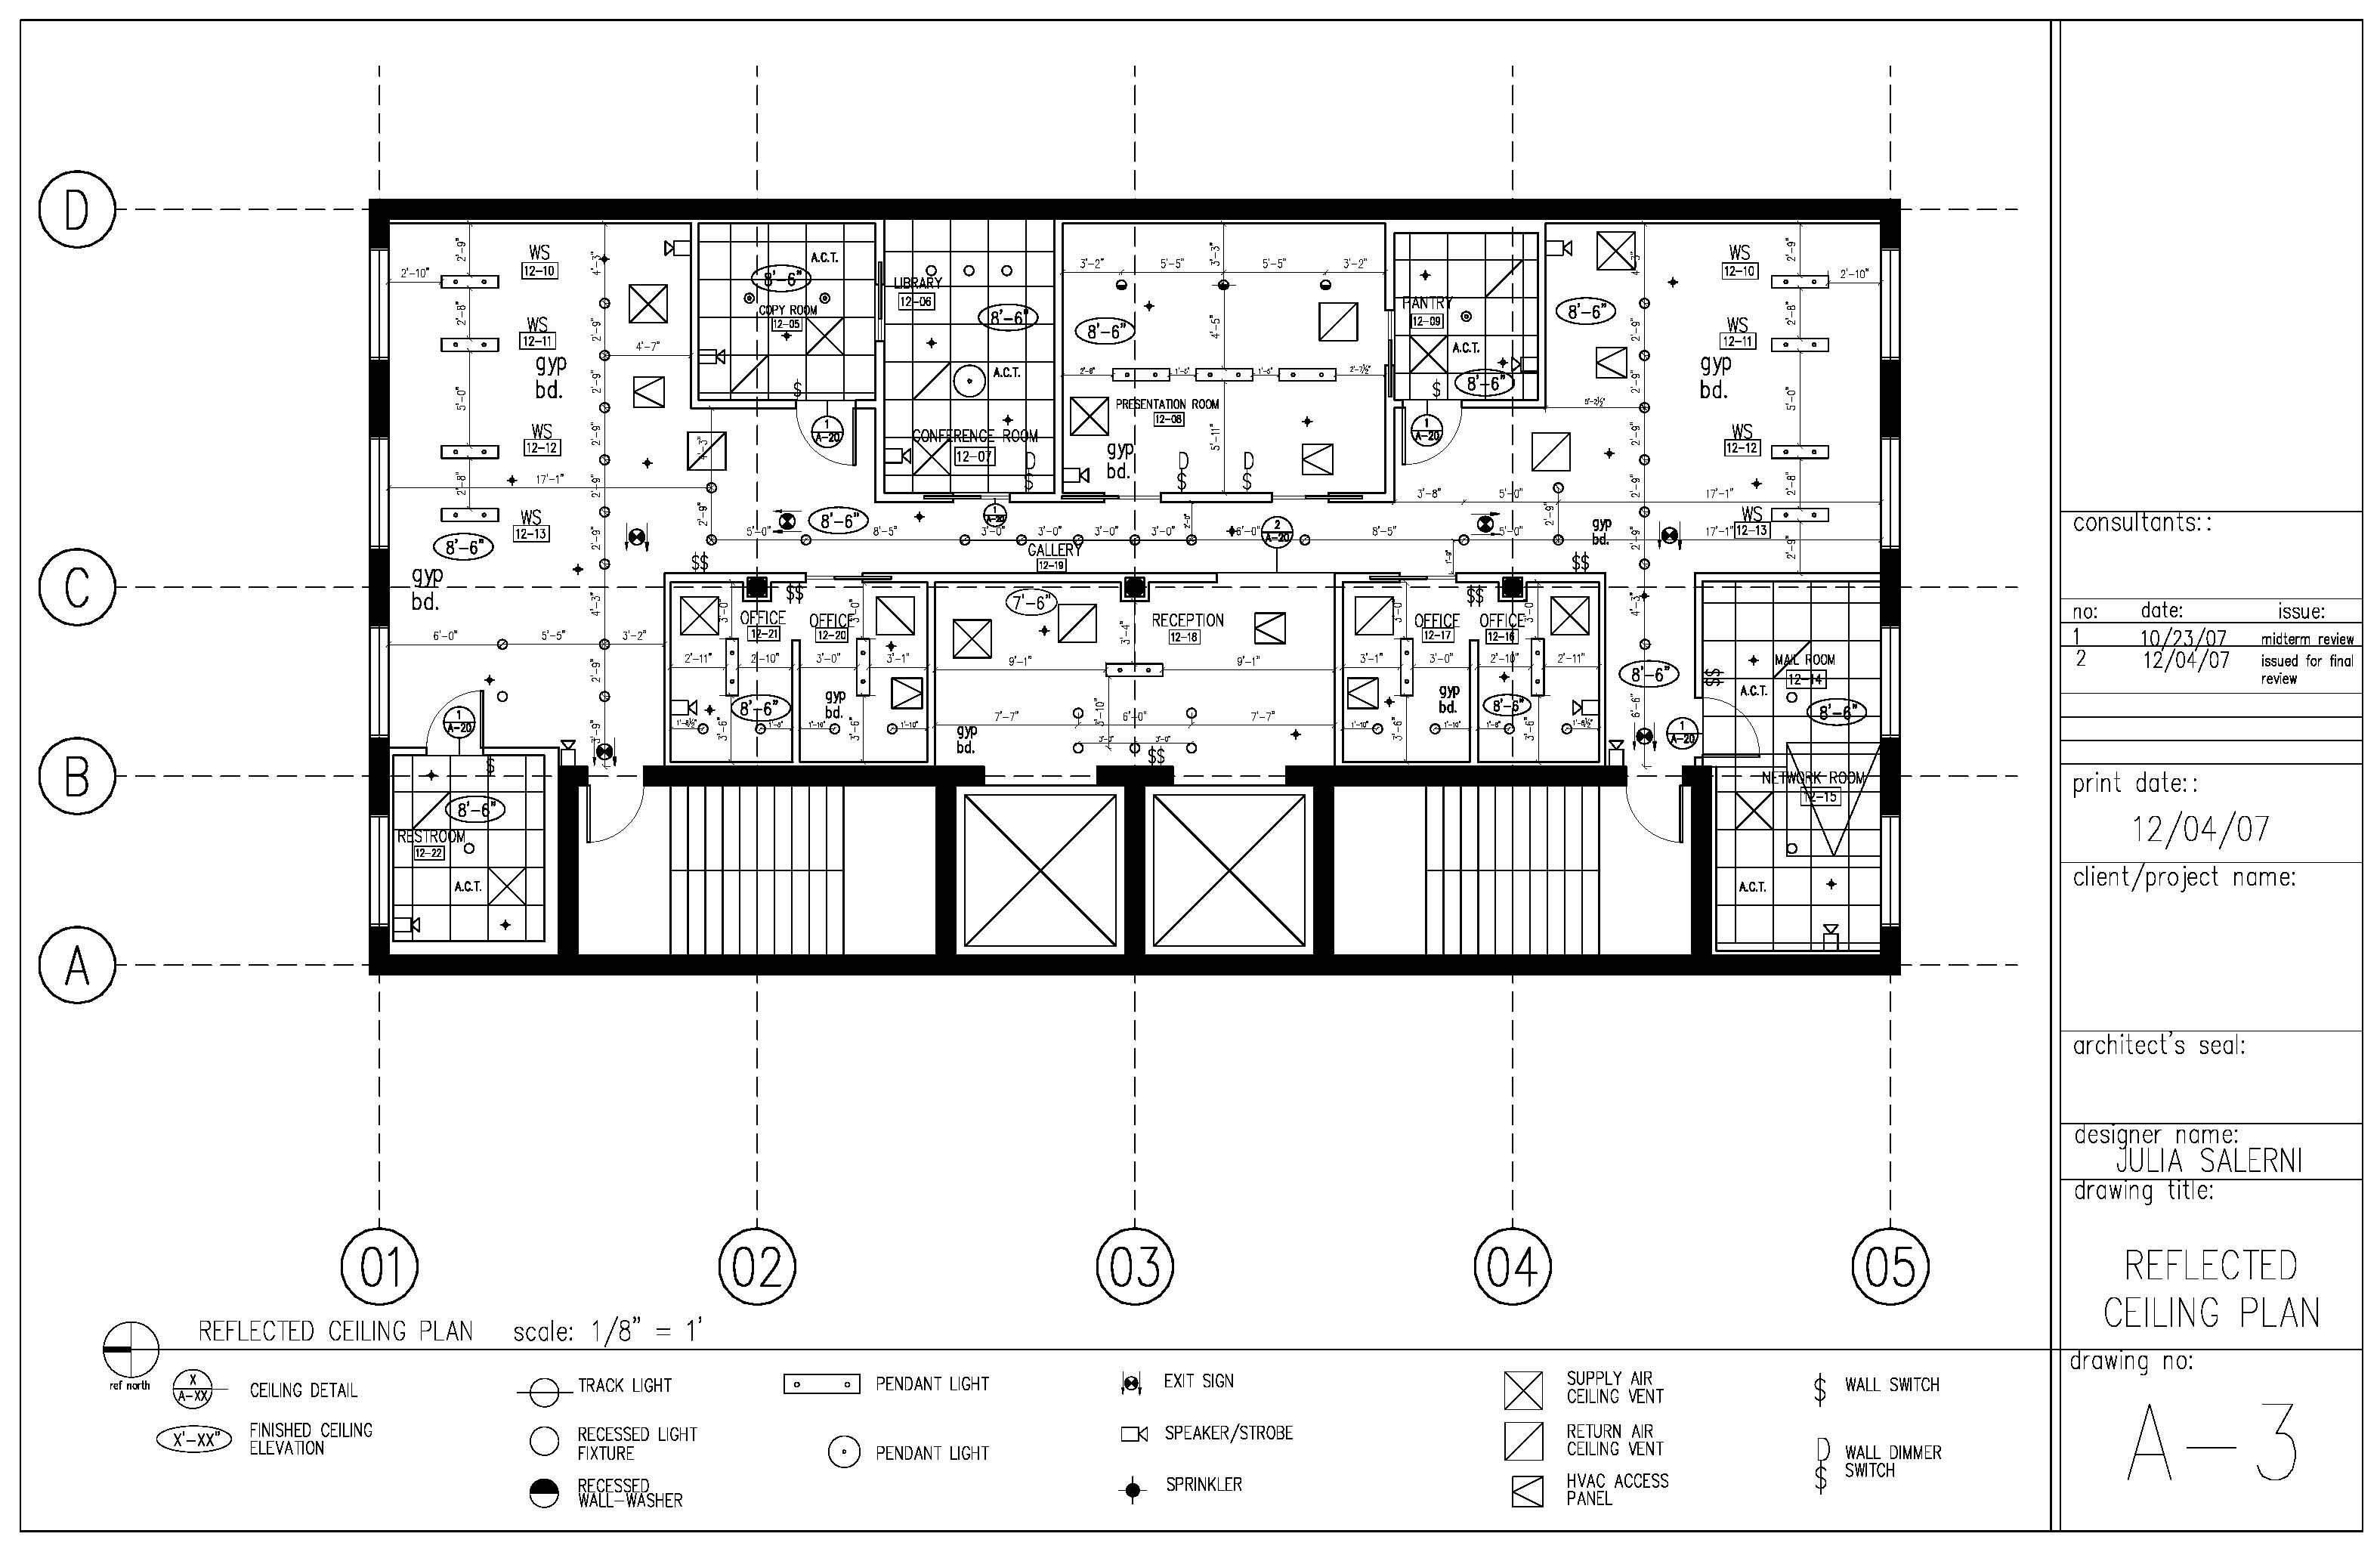 Construction documents reflected ceiling plan sample page for Autocad floor plan samples